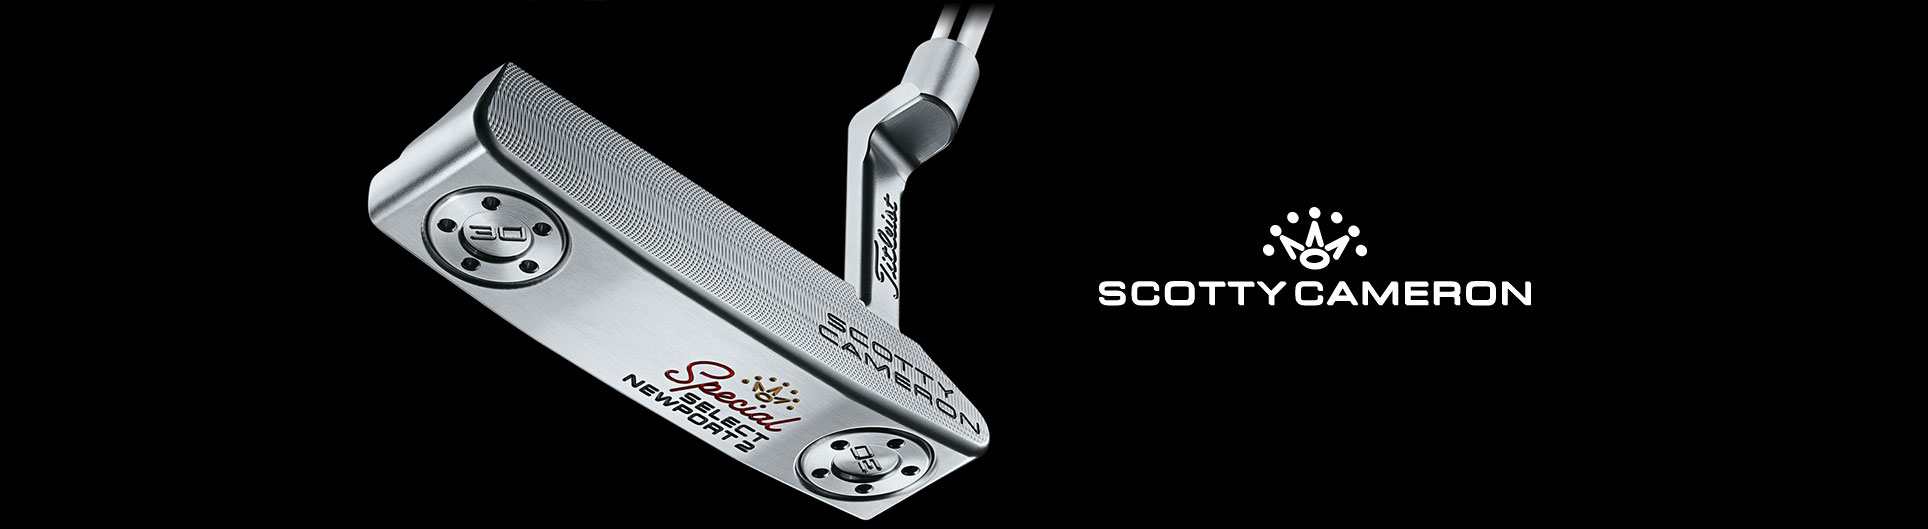 scotty-cameron-slide-new--updated